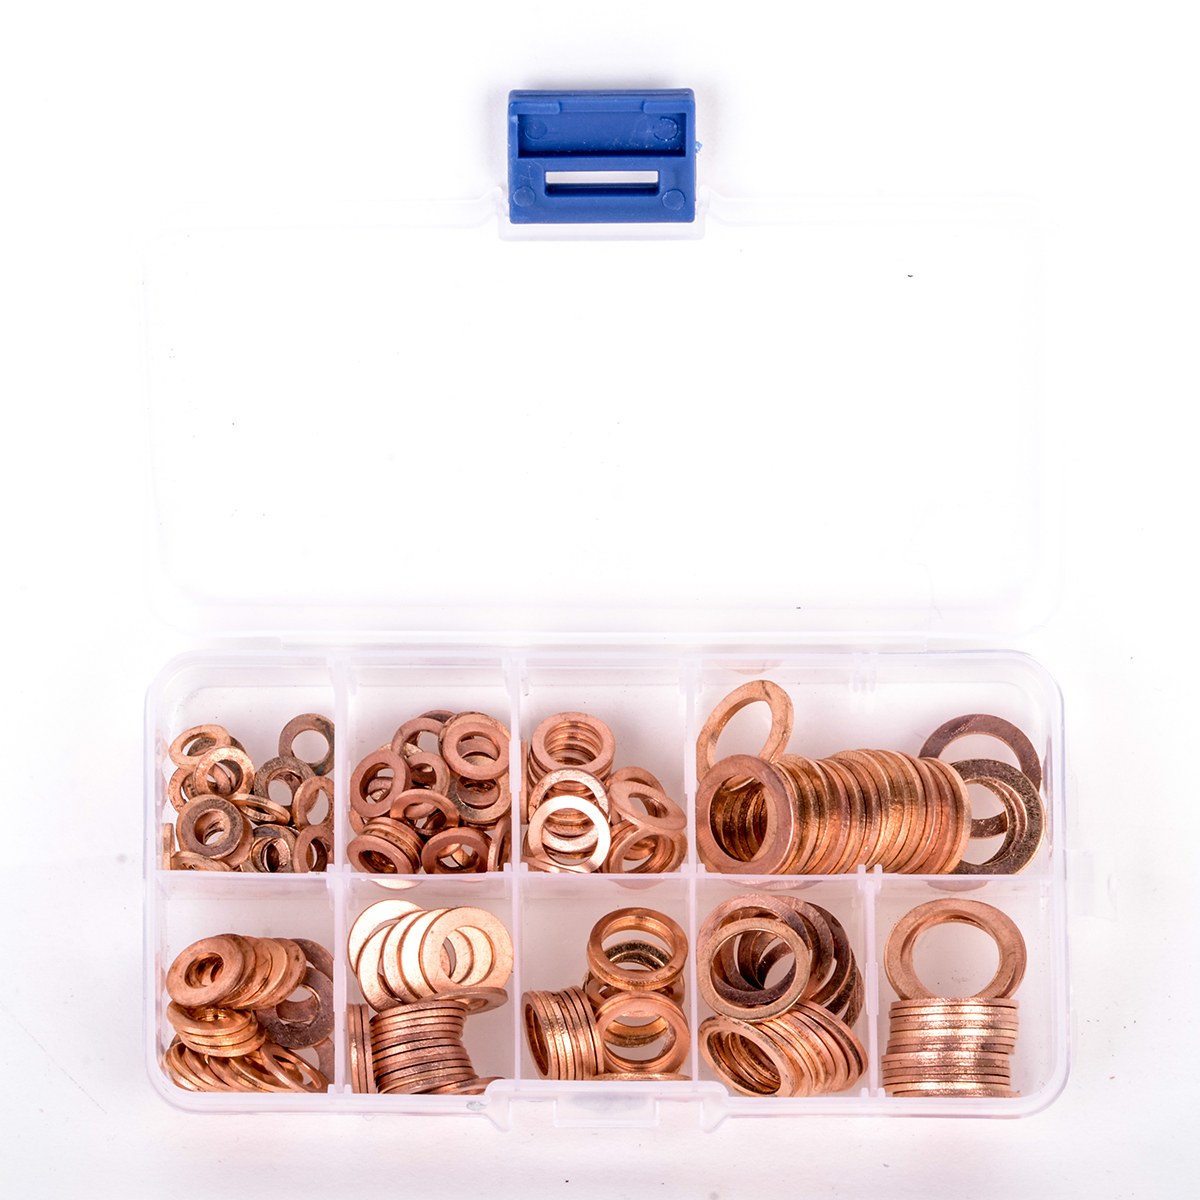 200pcs M5 M14 Professional Assorted Copper Washer Gasket Set Flat Ring Seal Assortment Kit with Box For Hardware Accessories|Washers| |  - title=